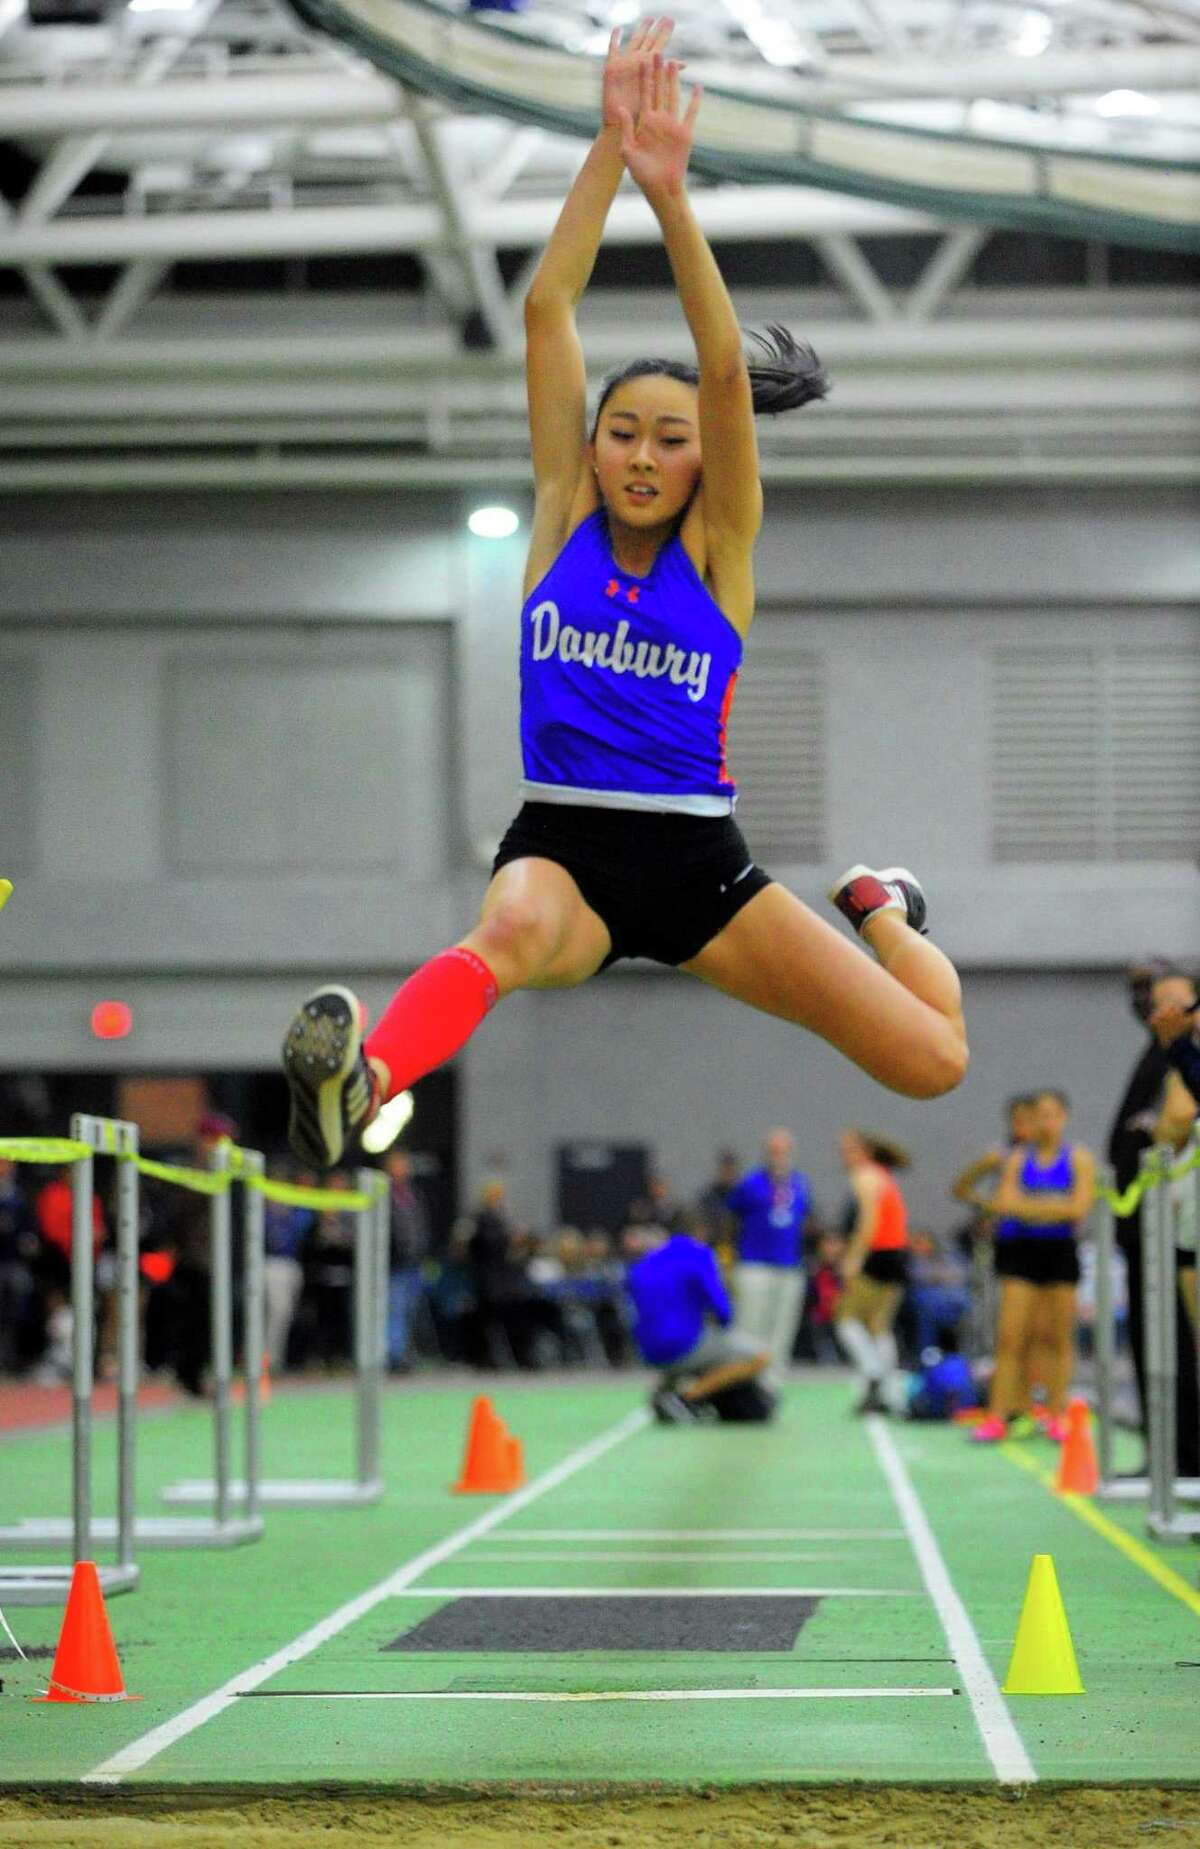 Danbury's Meilee Kry competes in the long jump during FCIAC Track Championship action in New Haven, Conn., on Thursday Feb. 6, 2020.